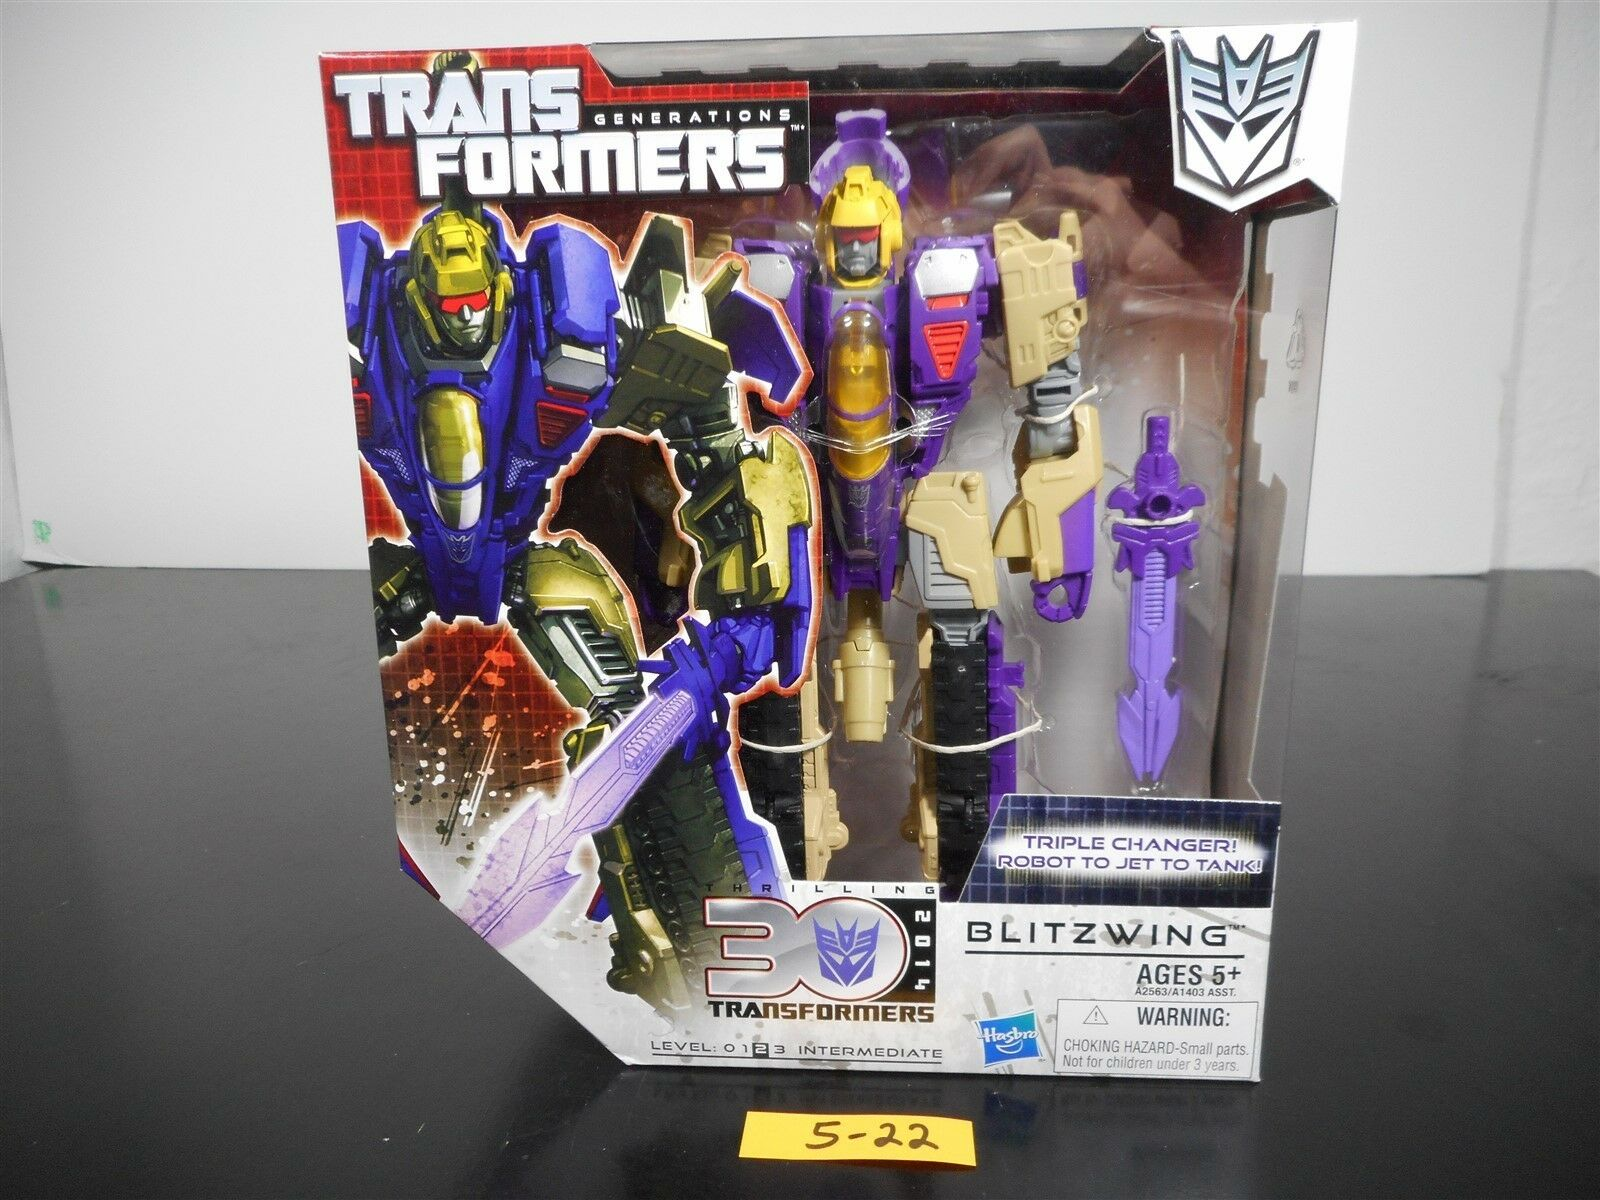 NEW & SEALED  Transformers Générations bliztwing figurine thirlling 30 5-22